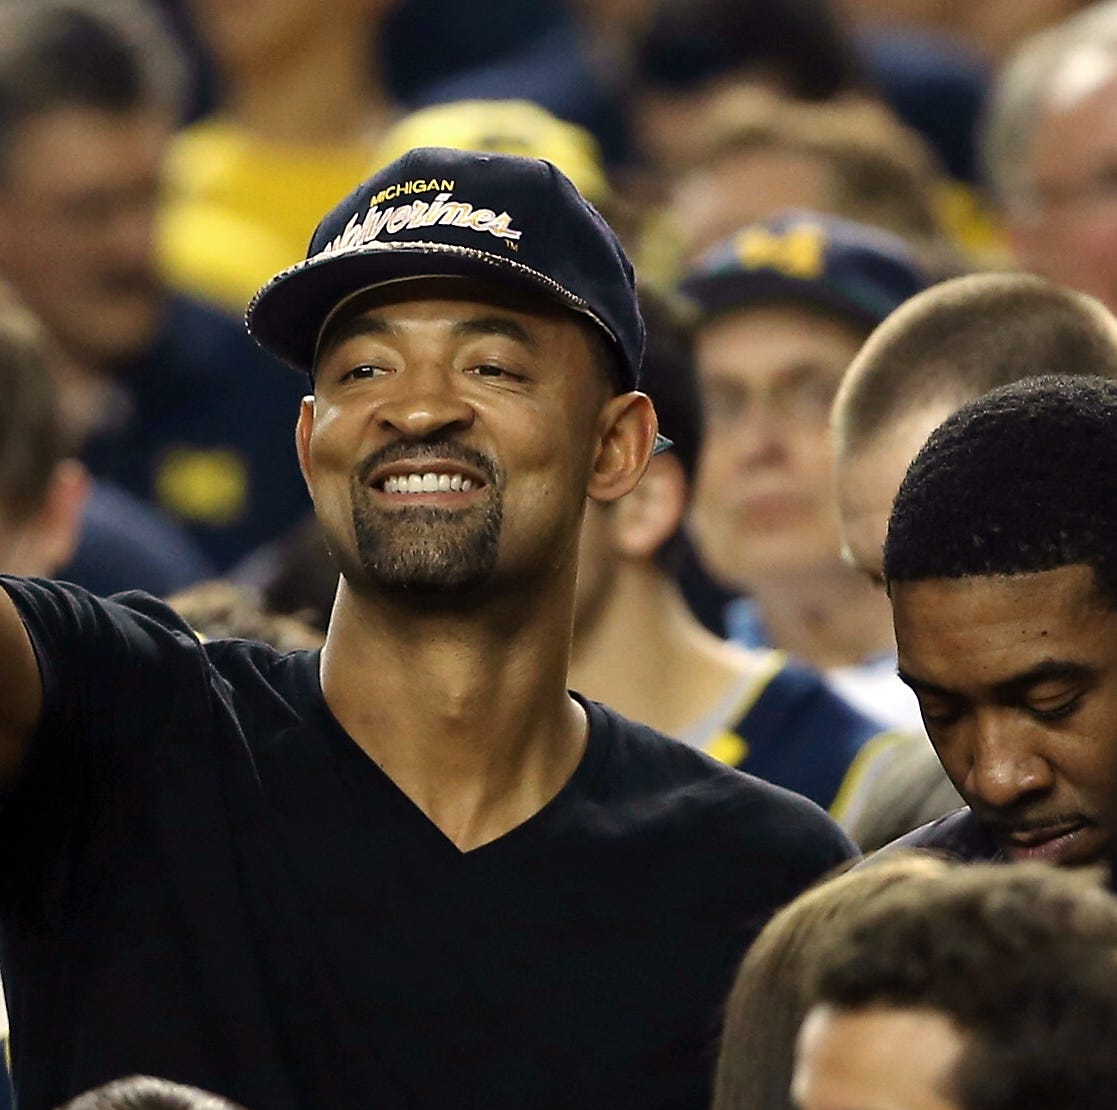 Michigan offers Juwan Howard head coaching job, deal being negotiated